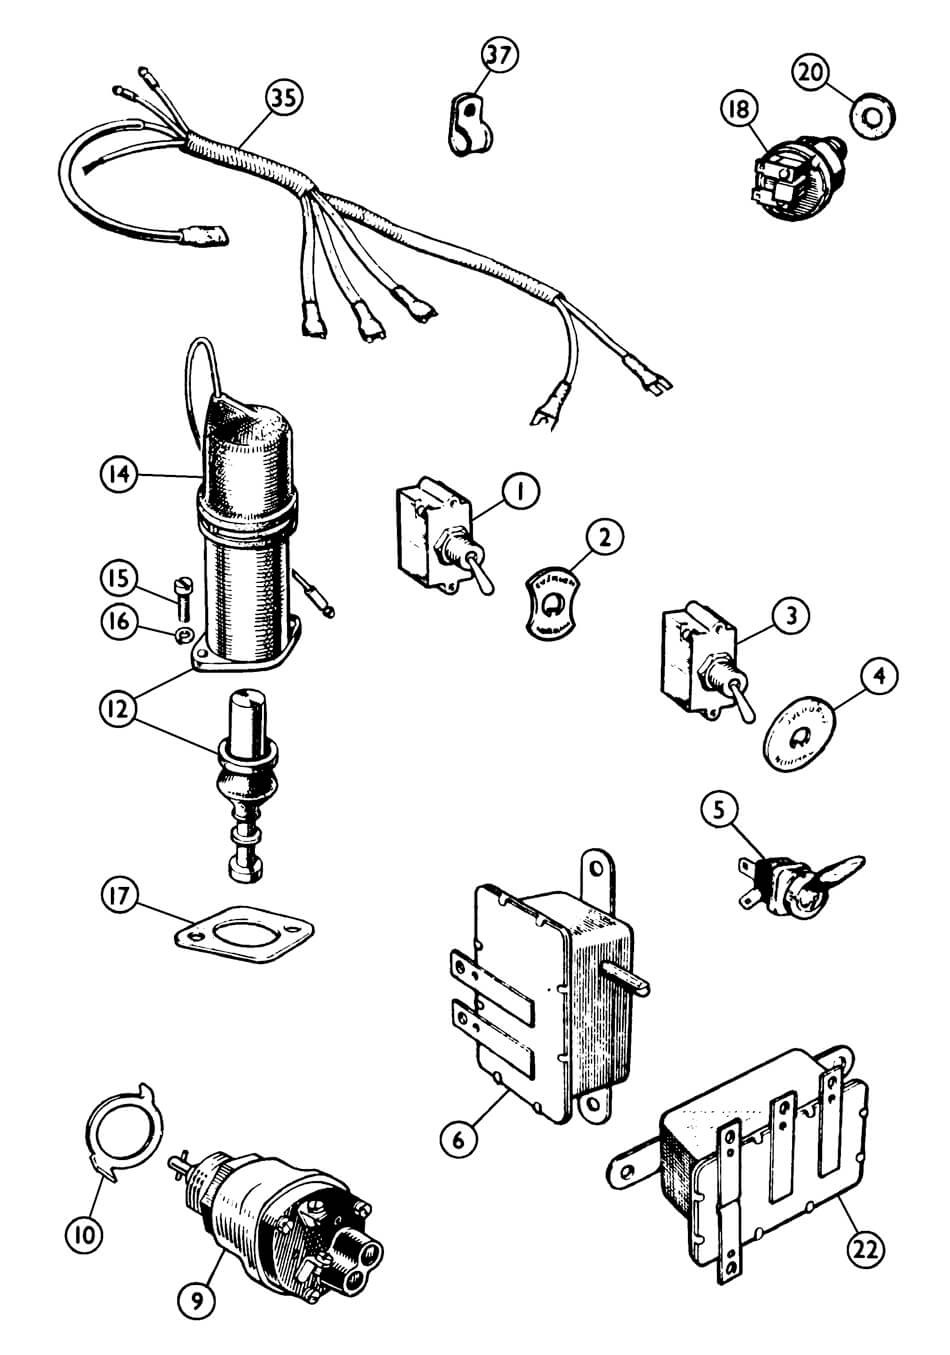 triumph spitfire overdrive gearbox wiring diagram free download 3SGTE Wiring-Diagram wrg 2570 triumph spitfire overdrive gearbox wiring diagram free